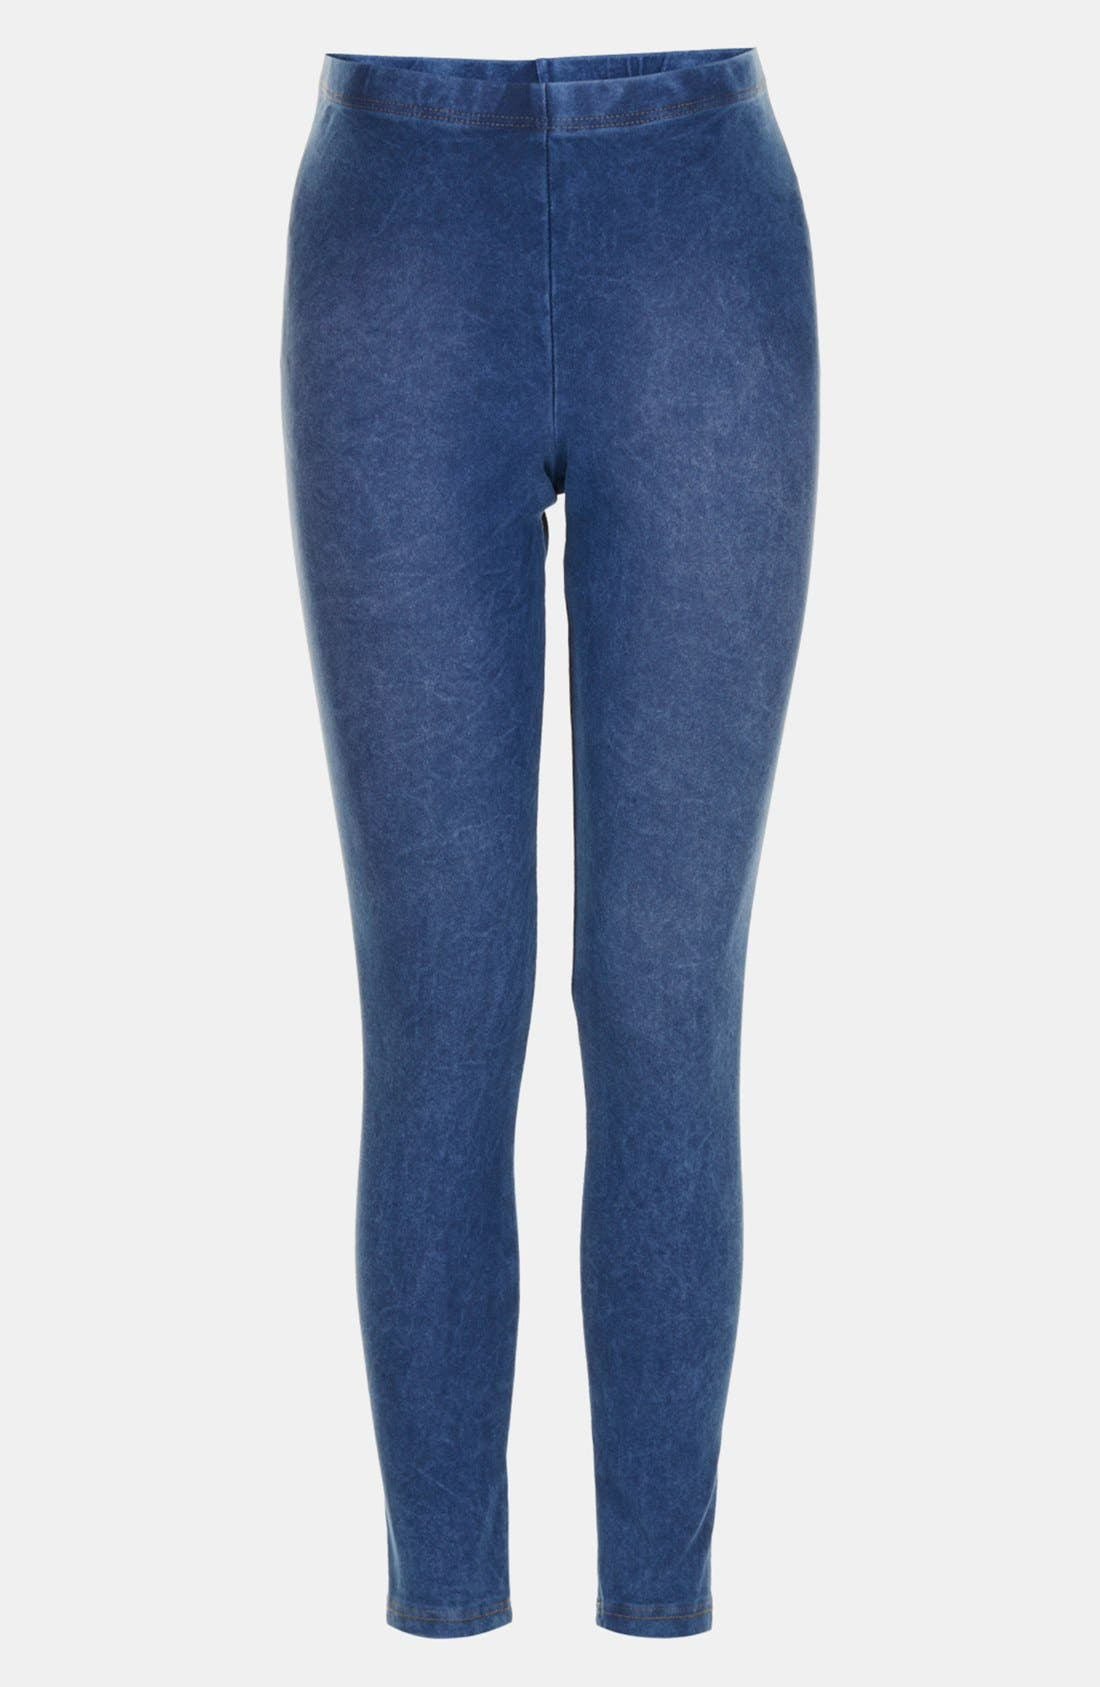 Main Image - Topshop Acid Wash Maternity Leggings